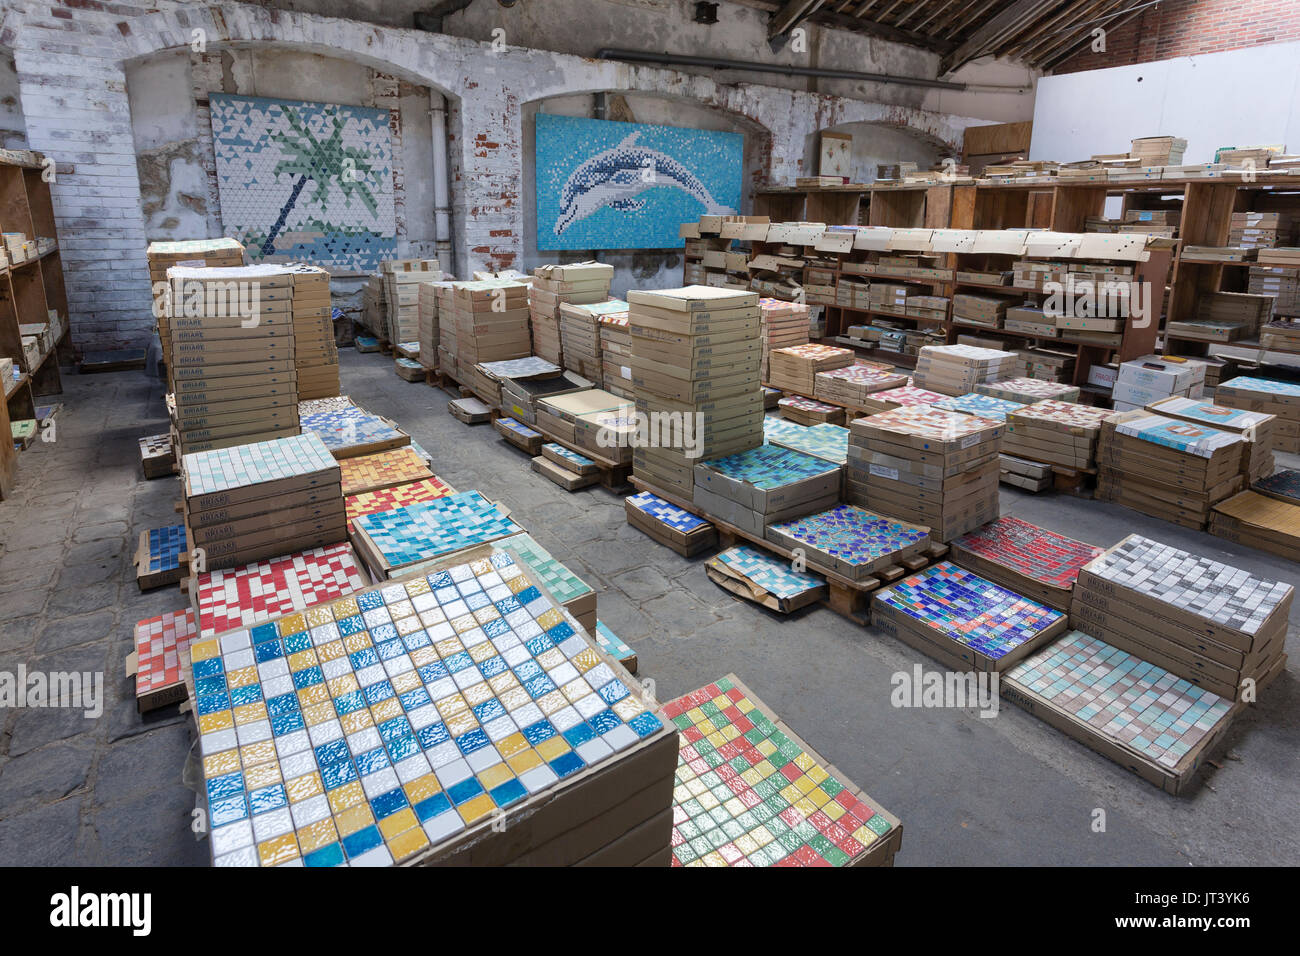 France Loiret Briare Musee De La Mosaique Et Des Emaux De Briare Le Magasin D Usine Photo Stock Alamy